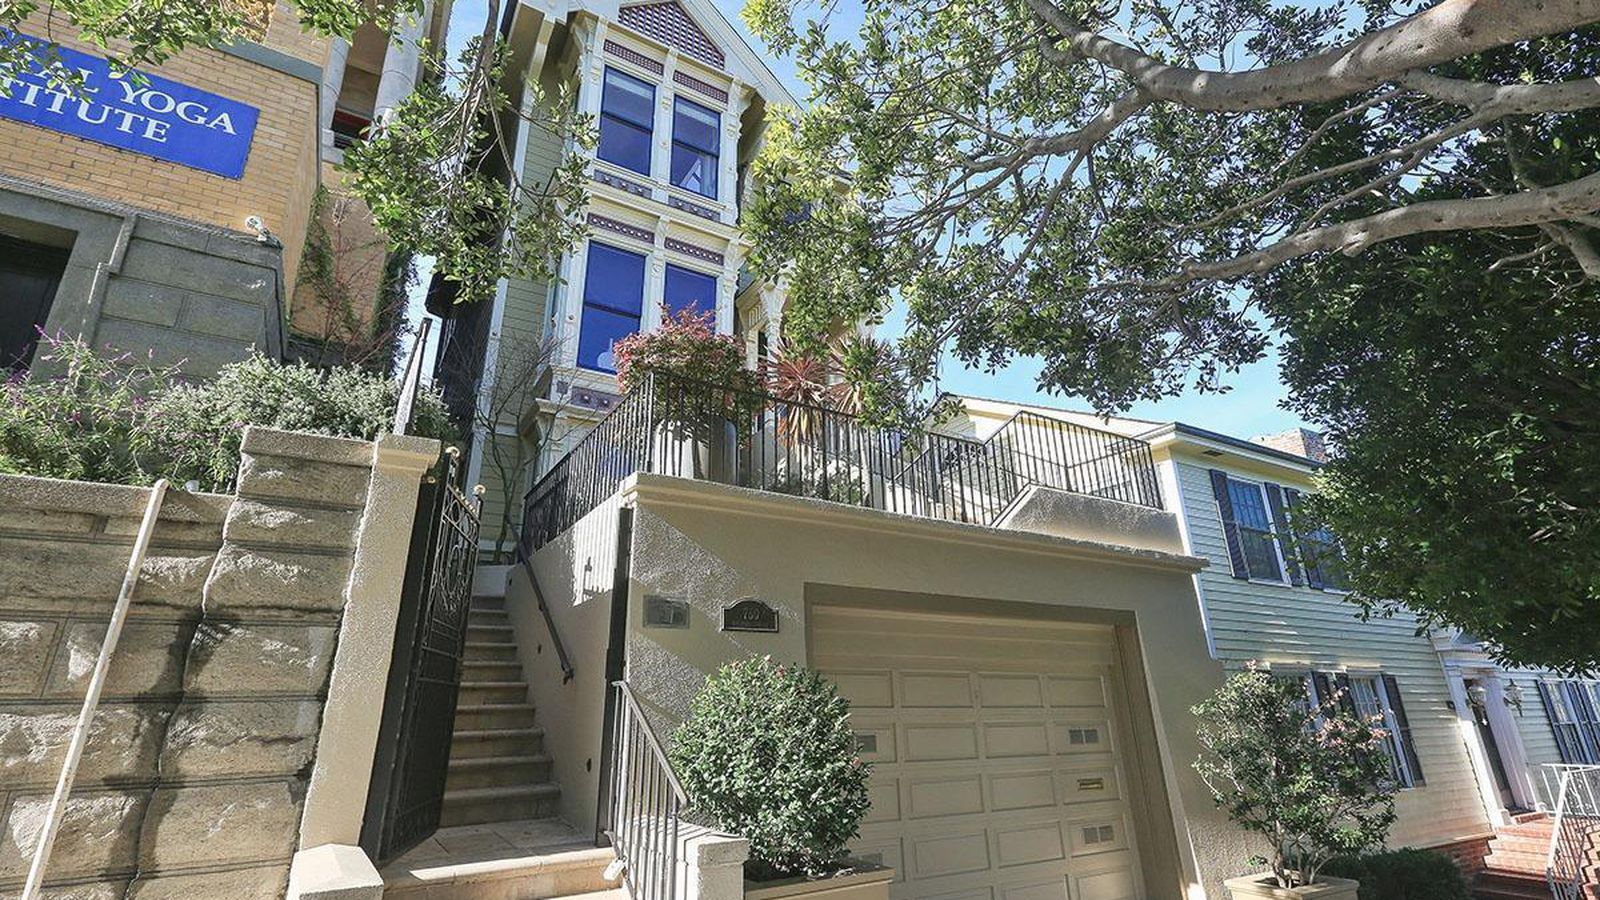 San francisco s most and least expensive homes this week for Least expensive house